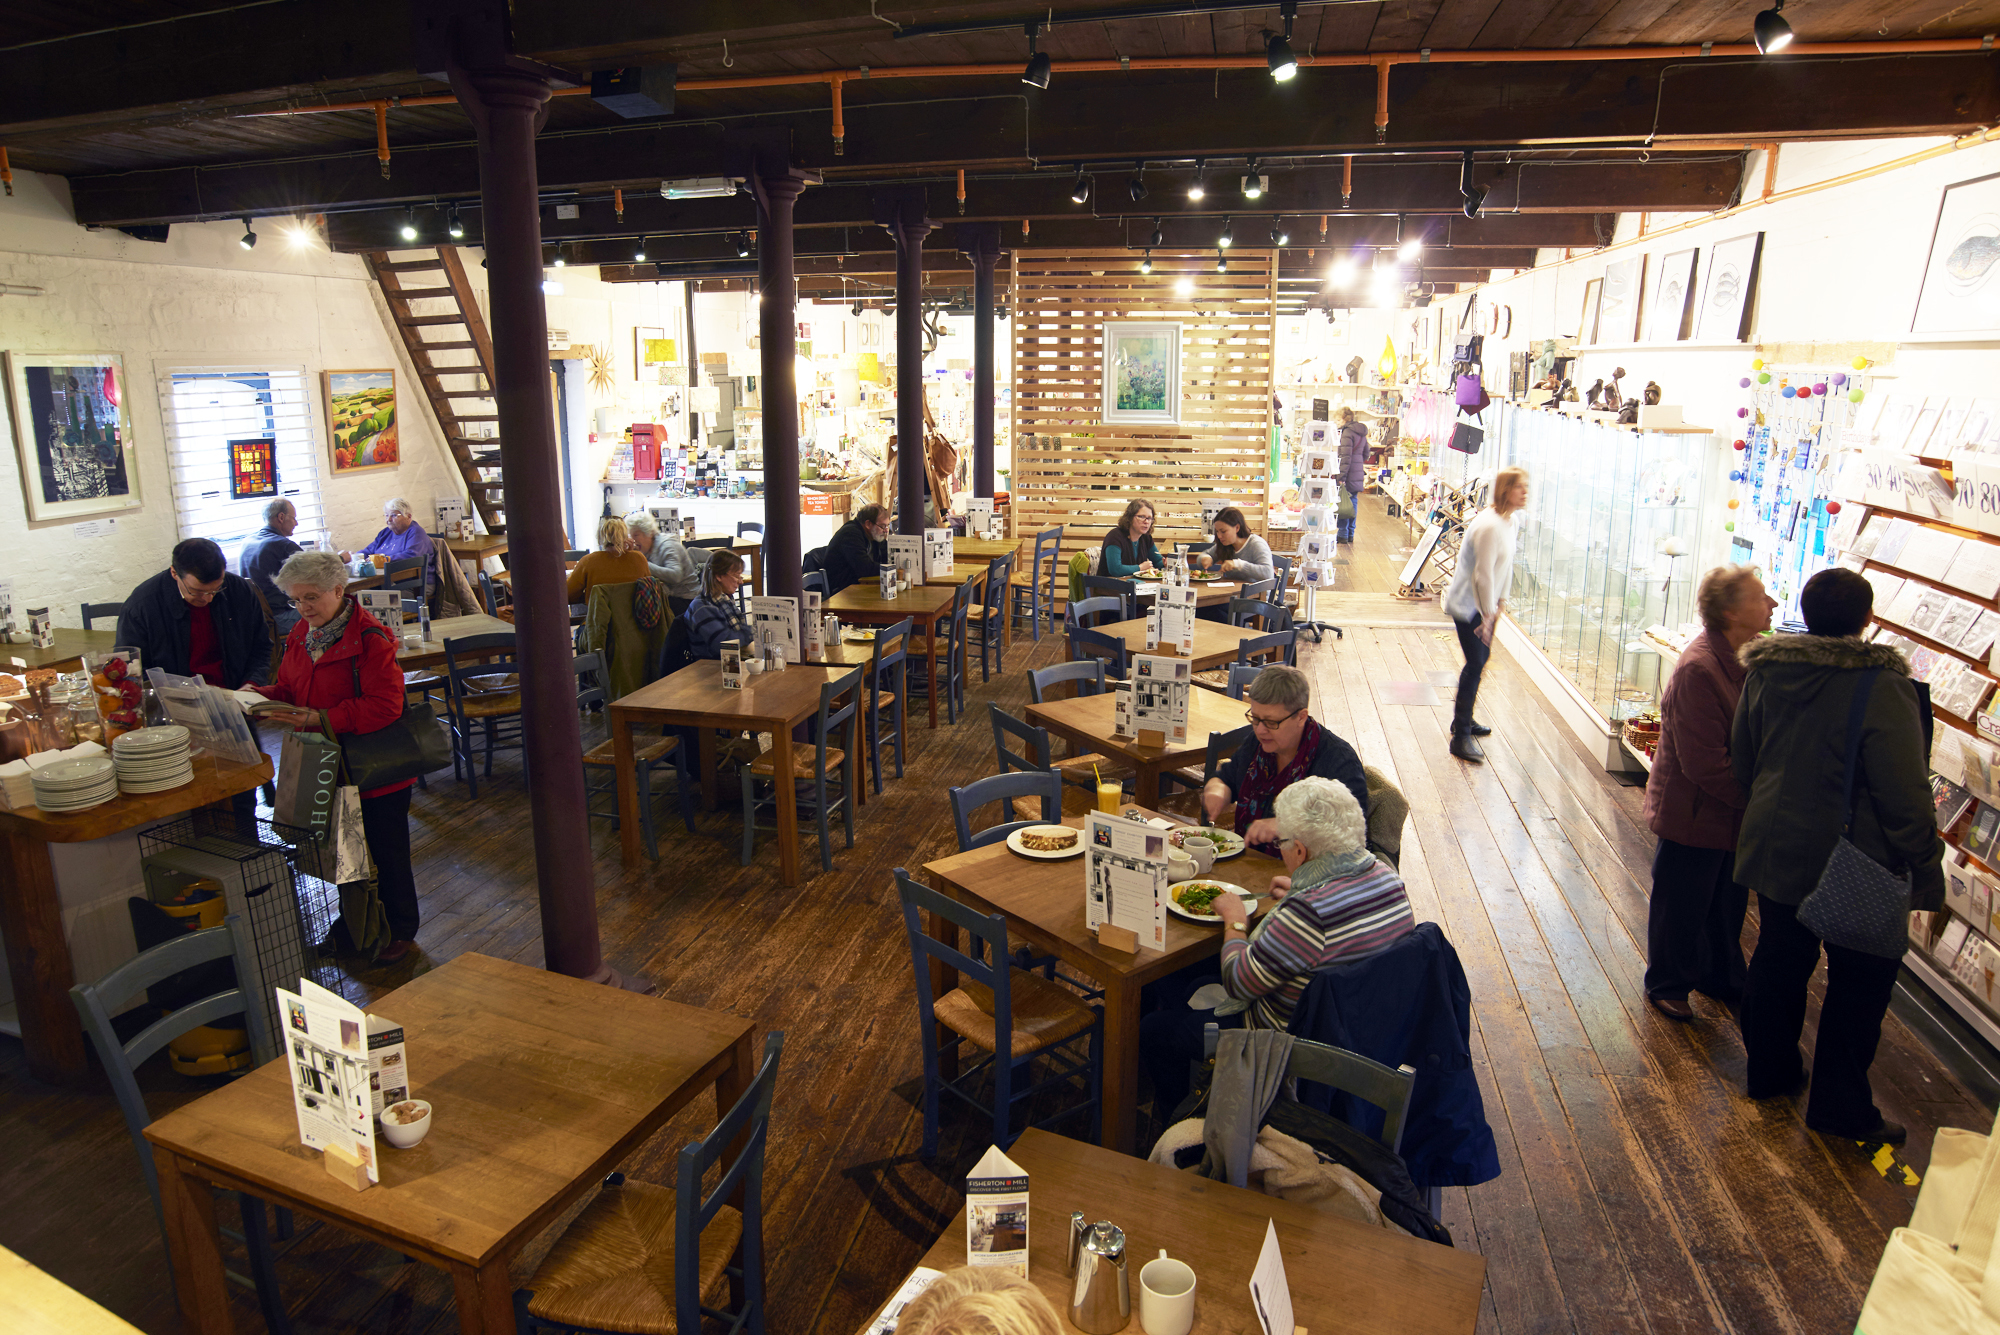 Gallery Cafe at Fisherton Mill